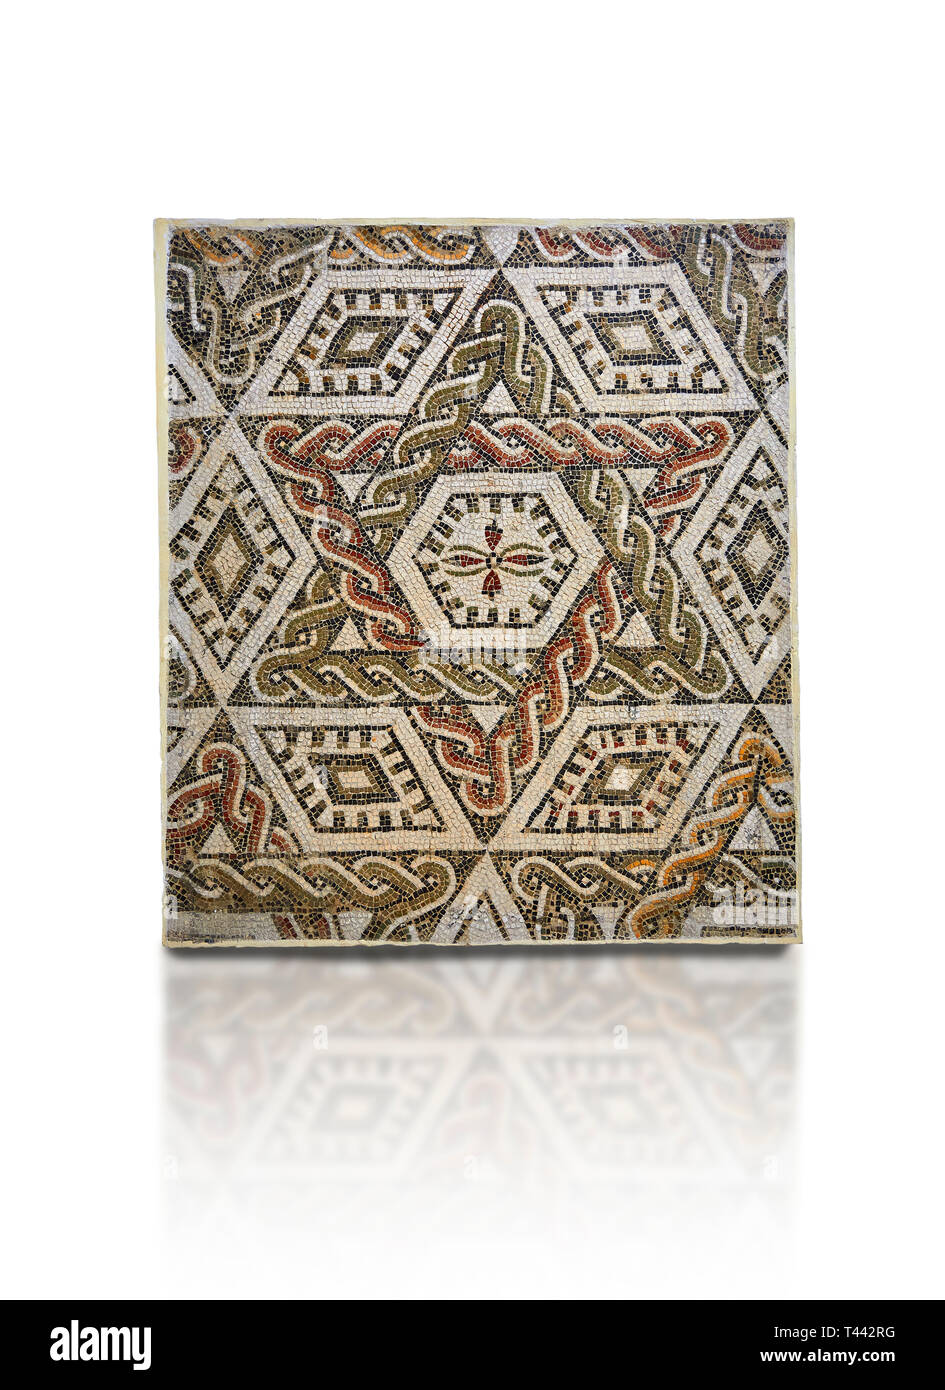 Pictures of a geometric Roman mosaics with a hexagon at its centre in the middle of which is a cruciform of flowers, from the ancient Roman city of Th - Stock Image